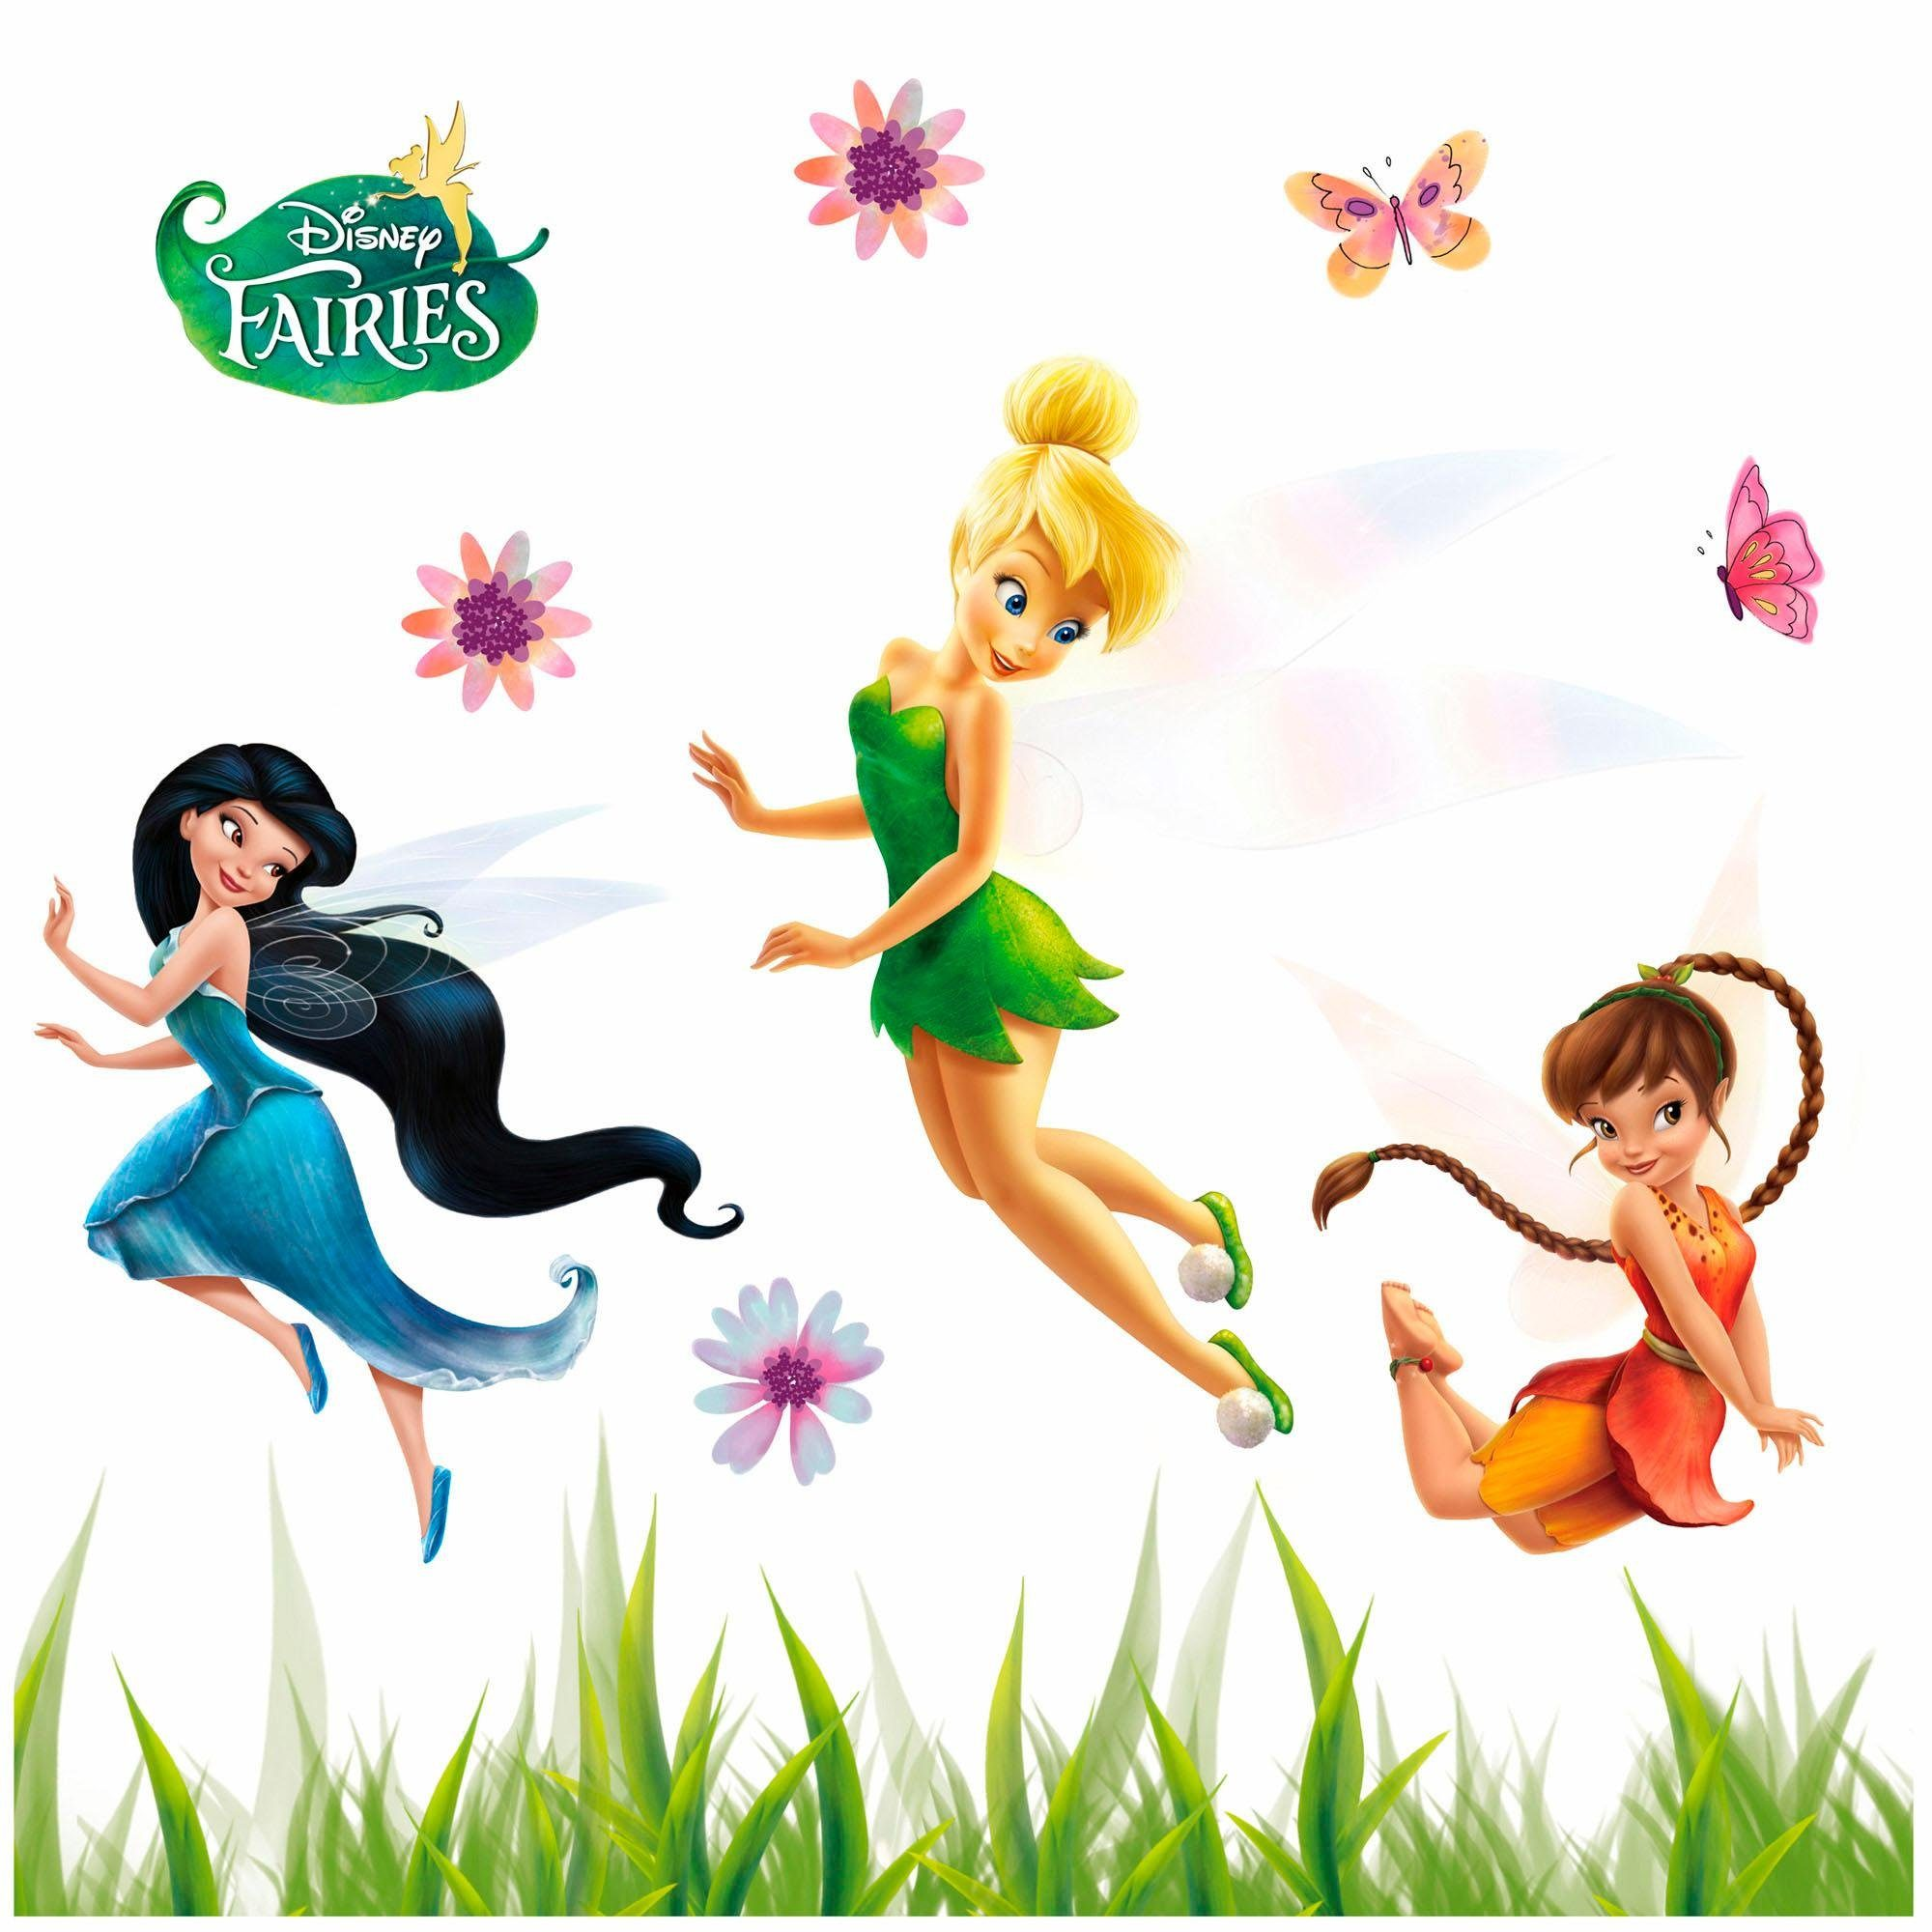 Komar Window-Sticker »Disney Fairies«, 31/31 cm